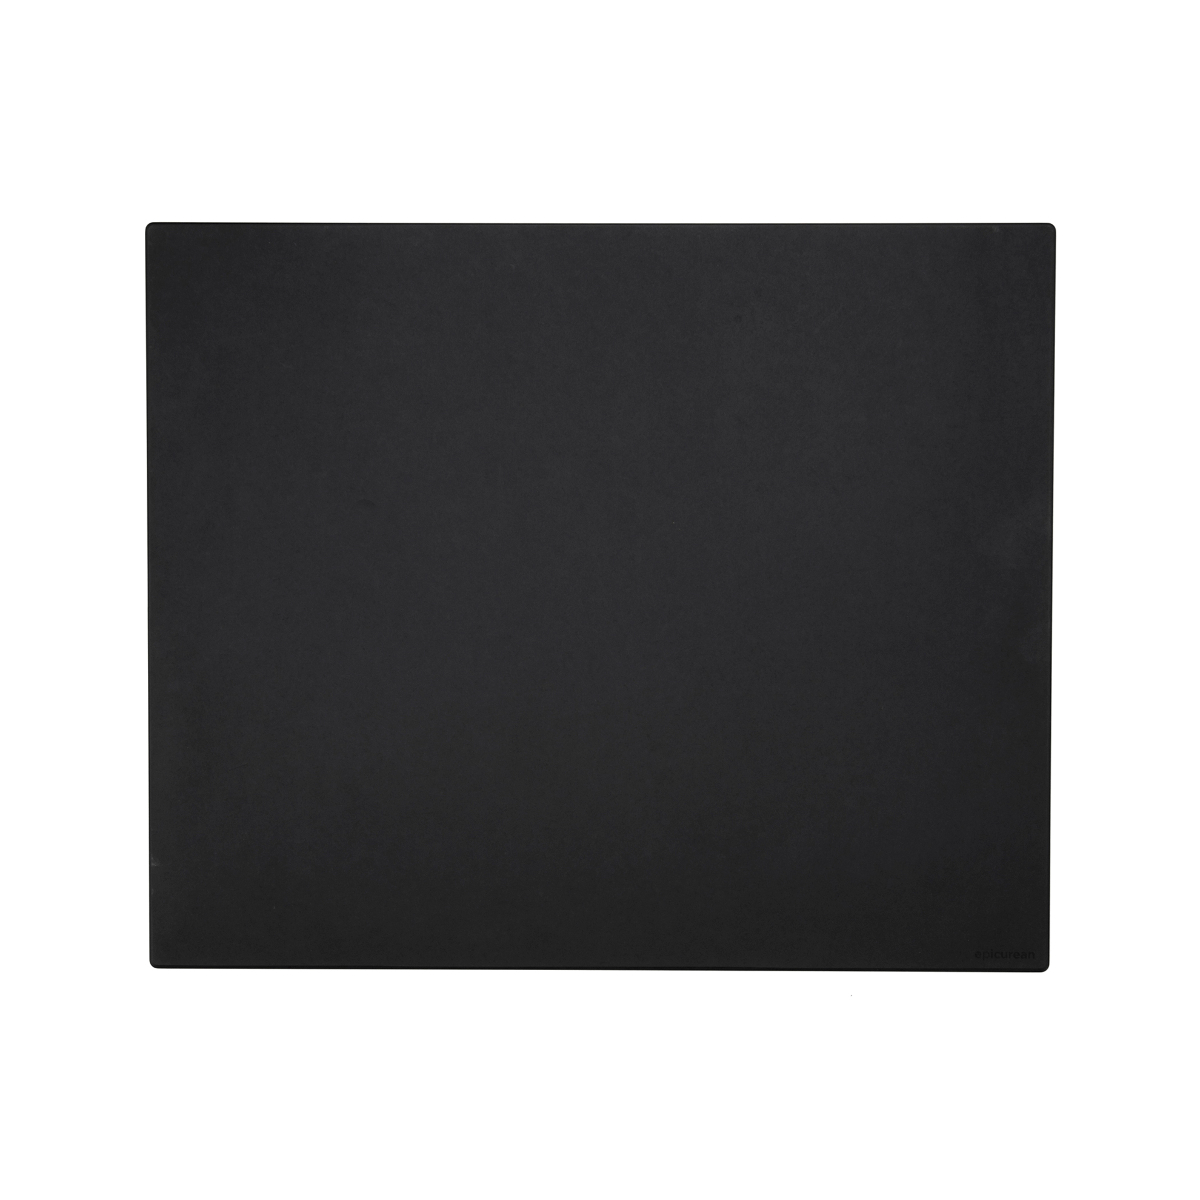 Epicurean Rectangle Series Slate 17.75 Inch Display Board